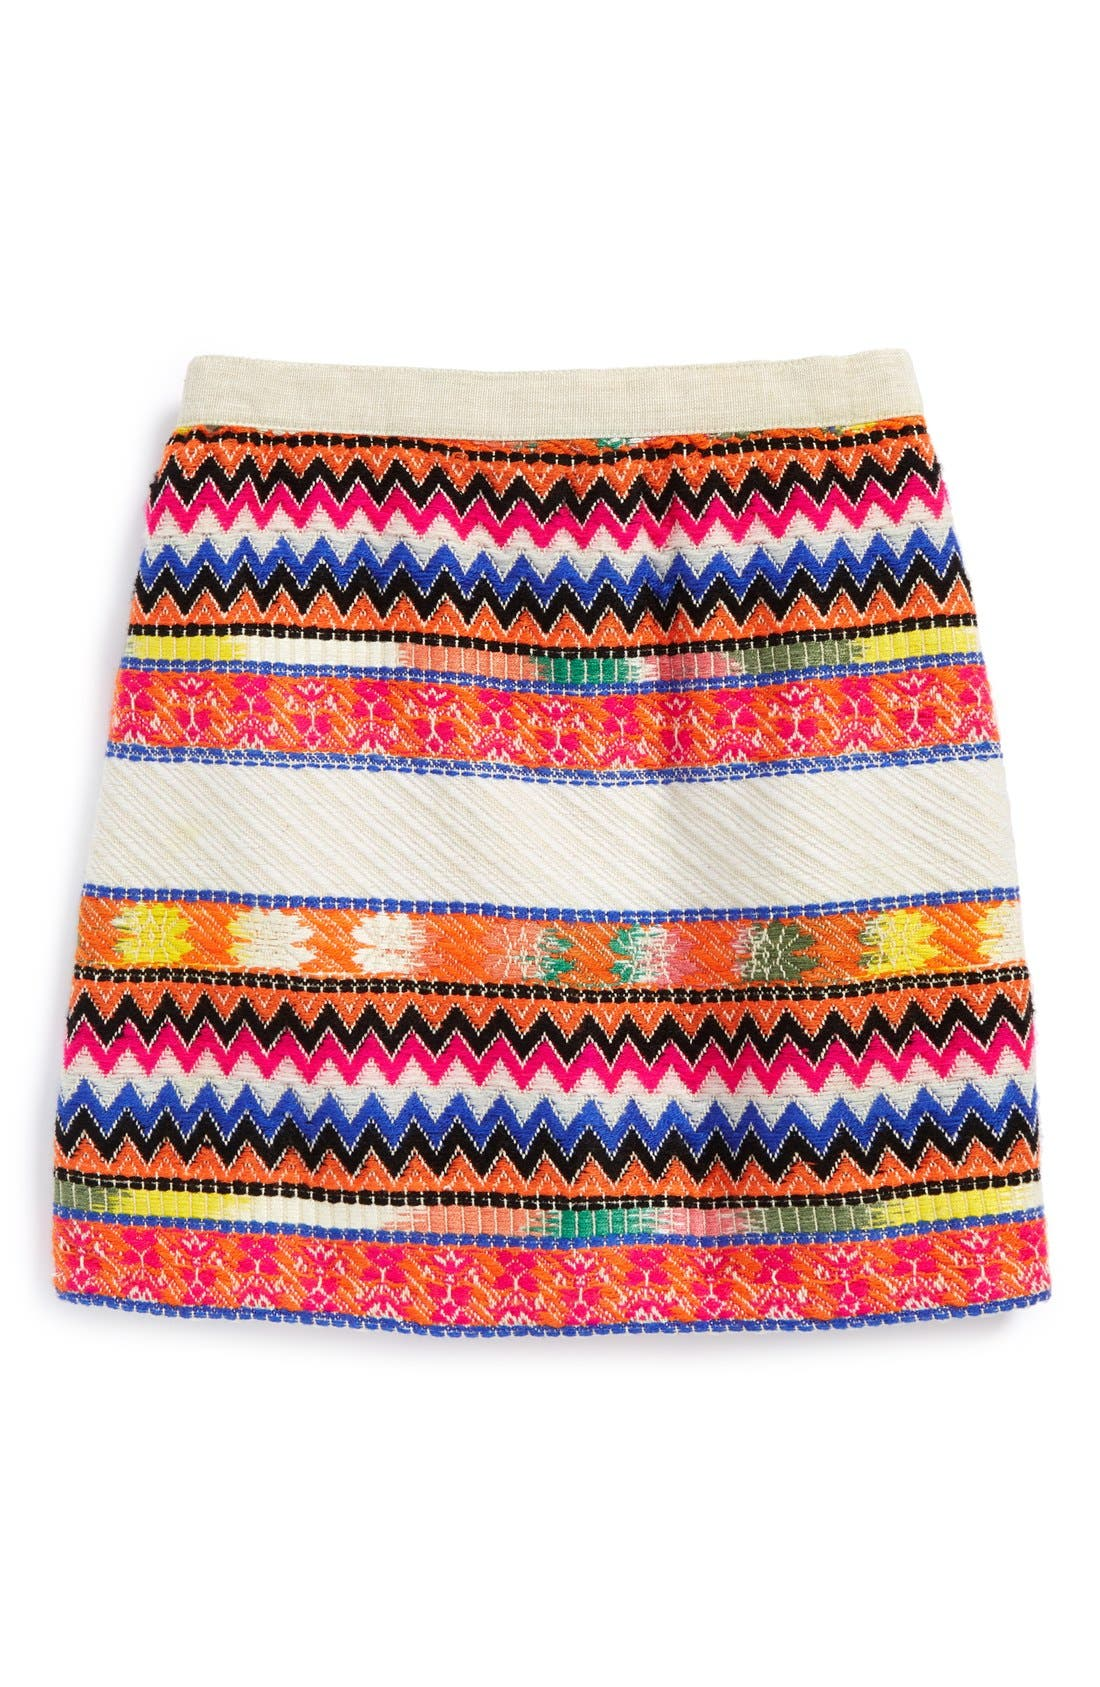 Alternate Image 1 Selected - Peek 'Natalie' Embroidered Skirt (Toddler Girls, Little Girls & Big Girls)